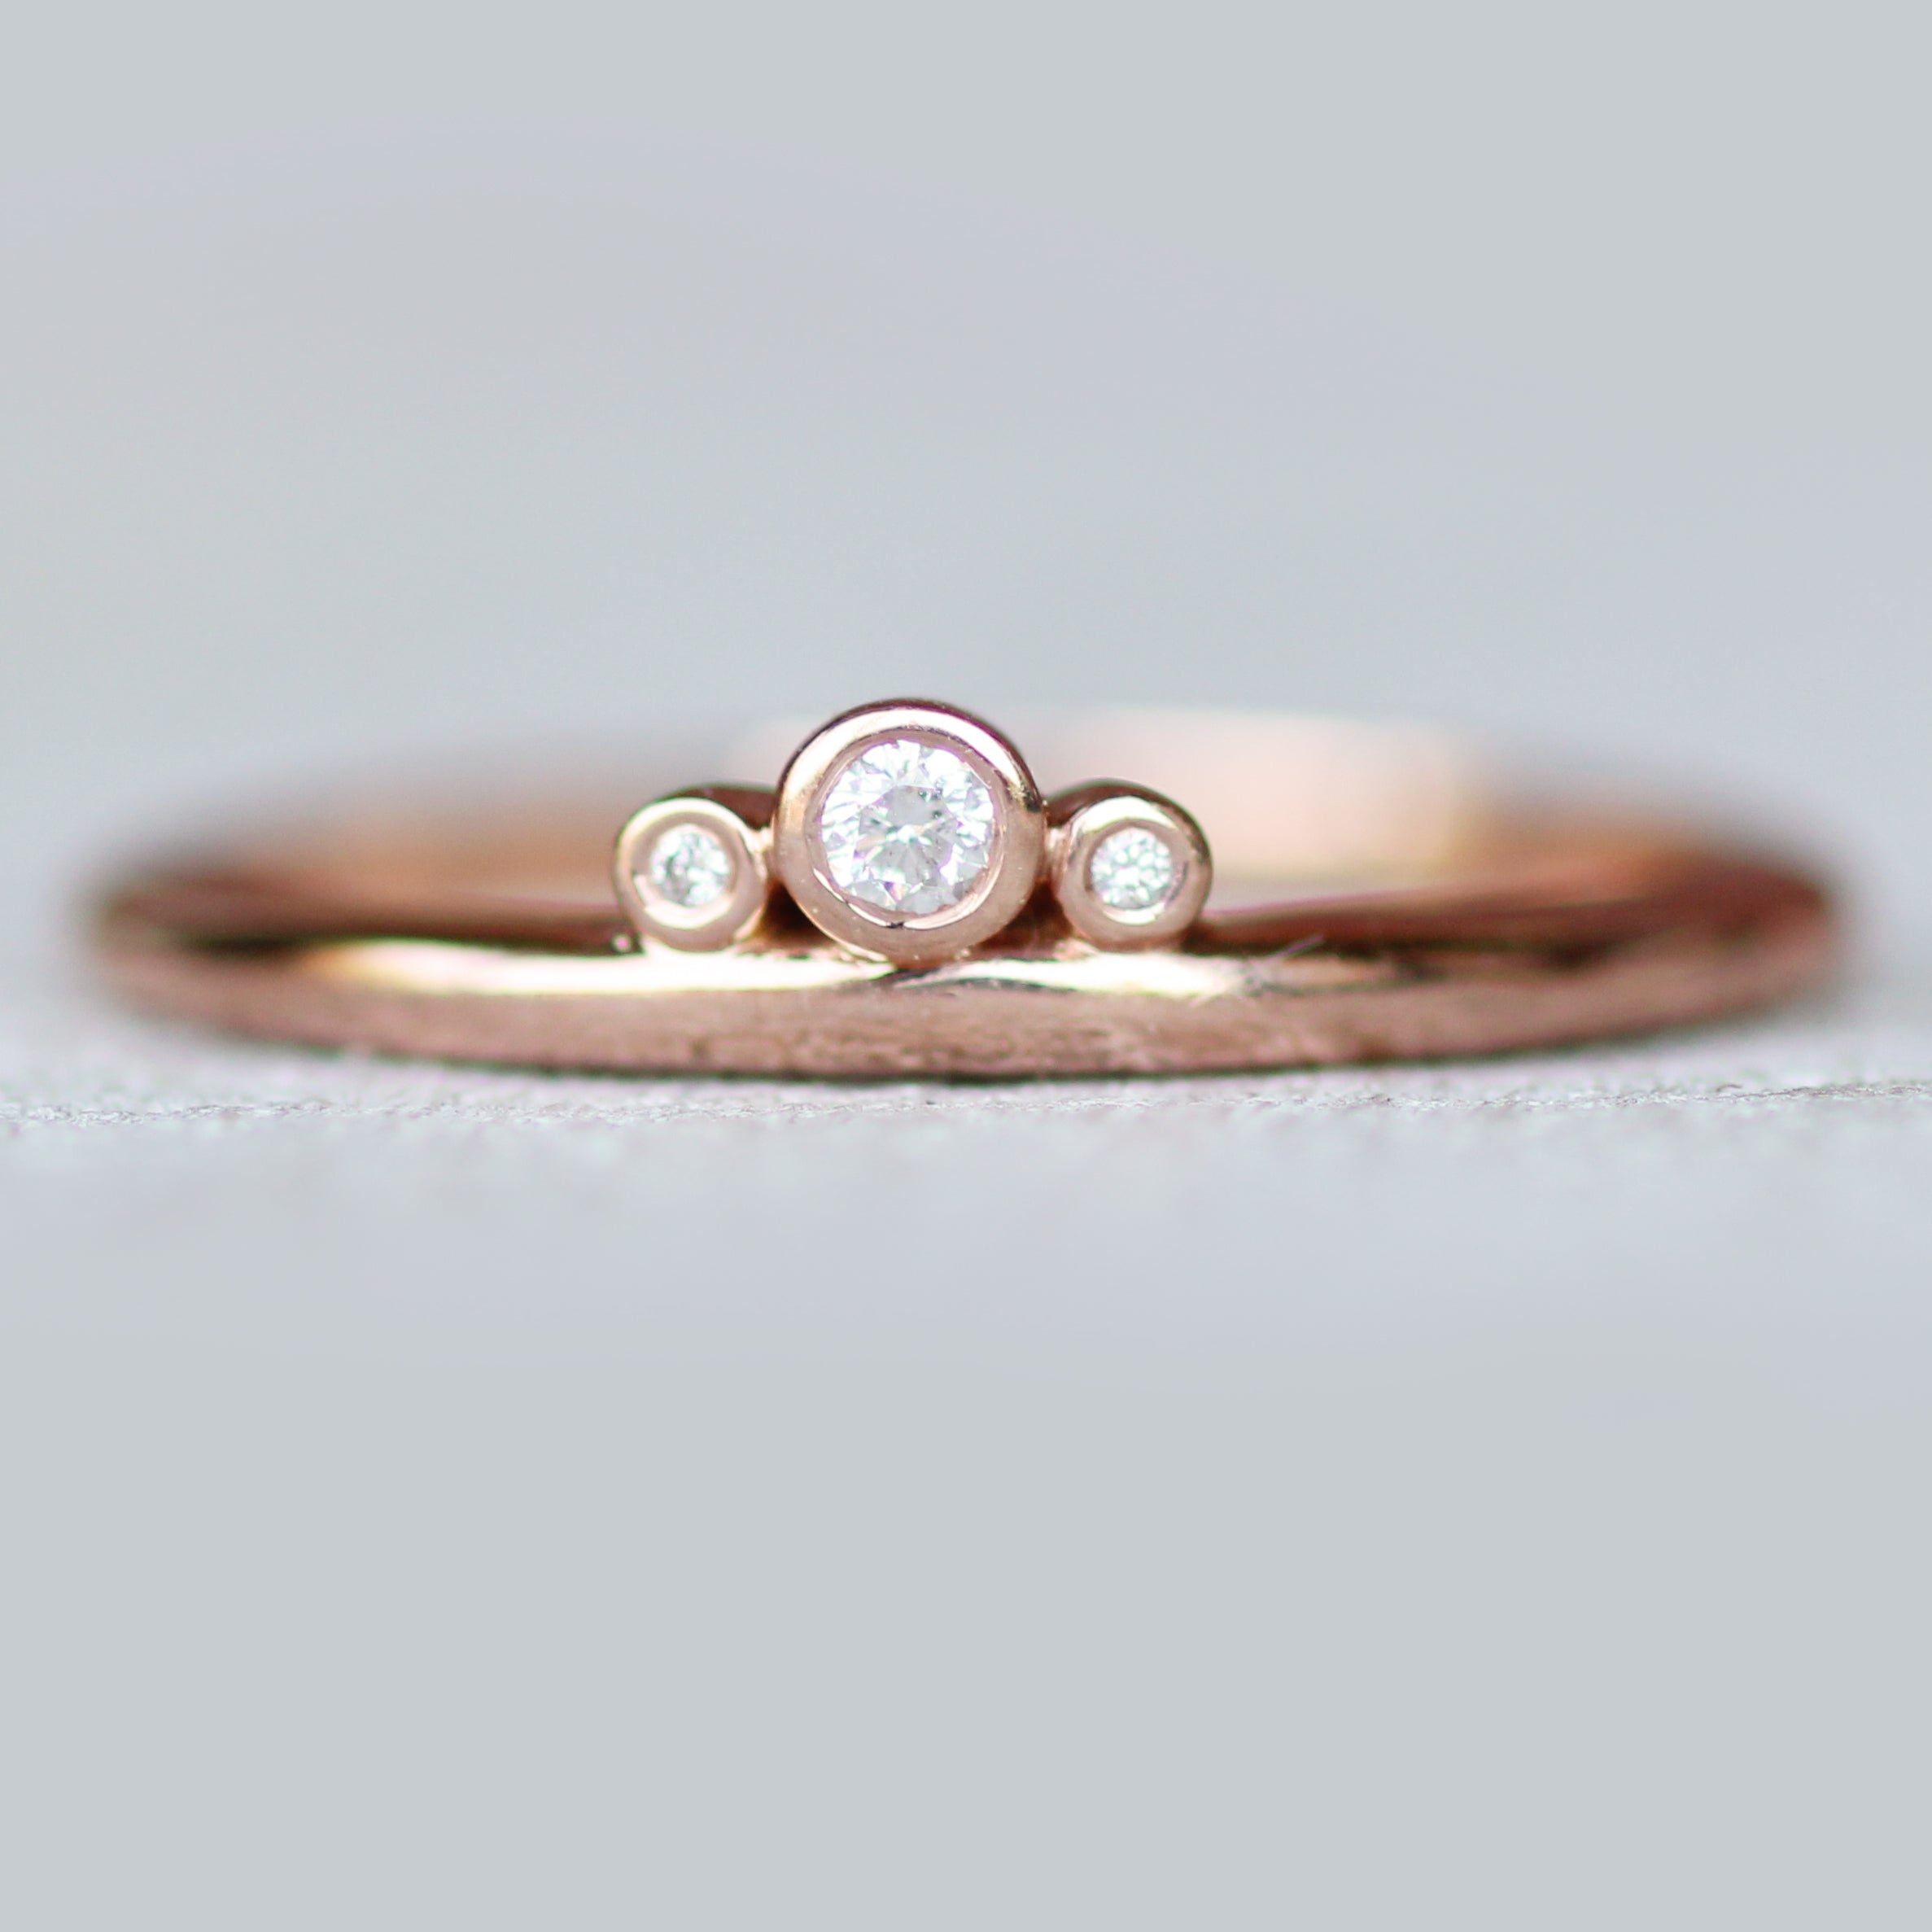 Trinity Ring with Bezel Set Diamonds in 10k Rose Gold - Ready to Size and Ship - Celestial Diamonds ® by Midwinter Co.